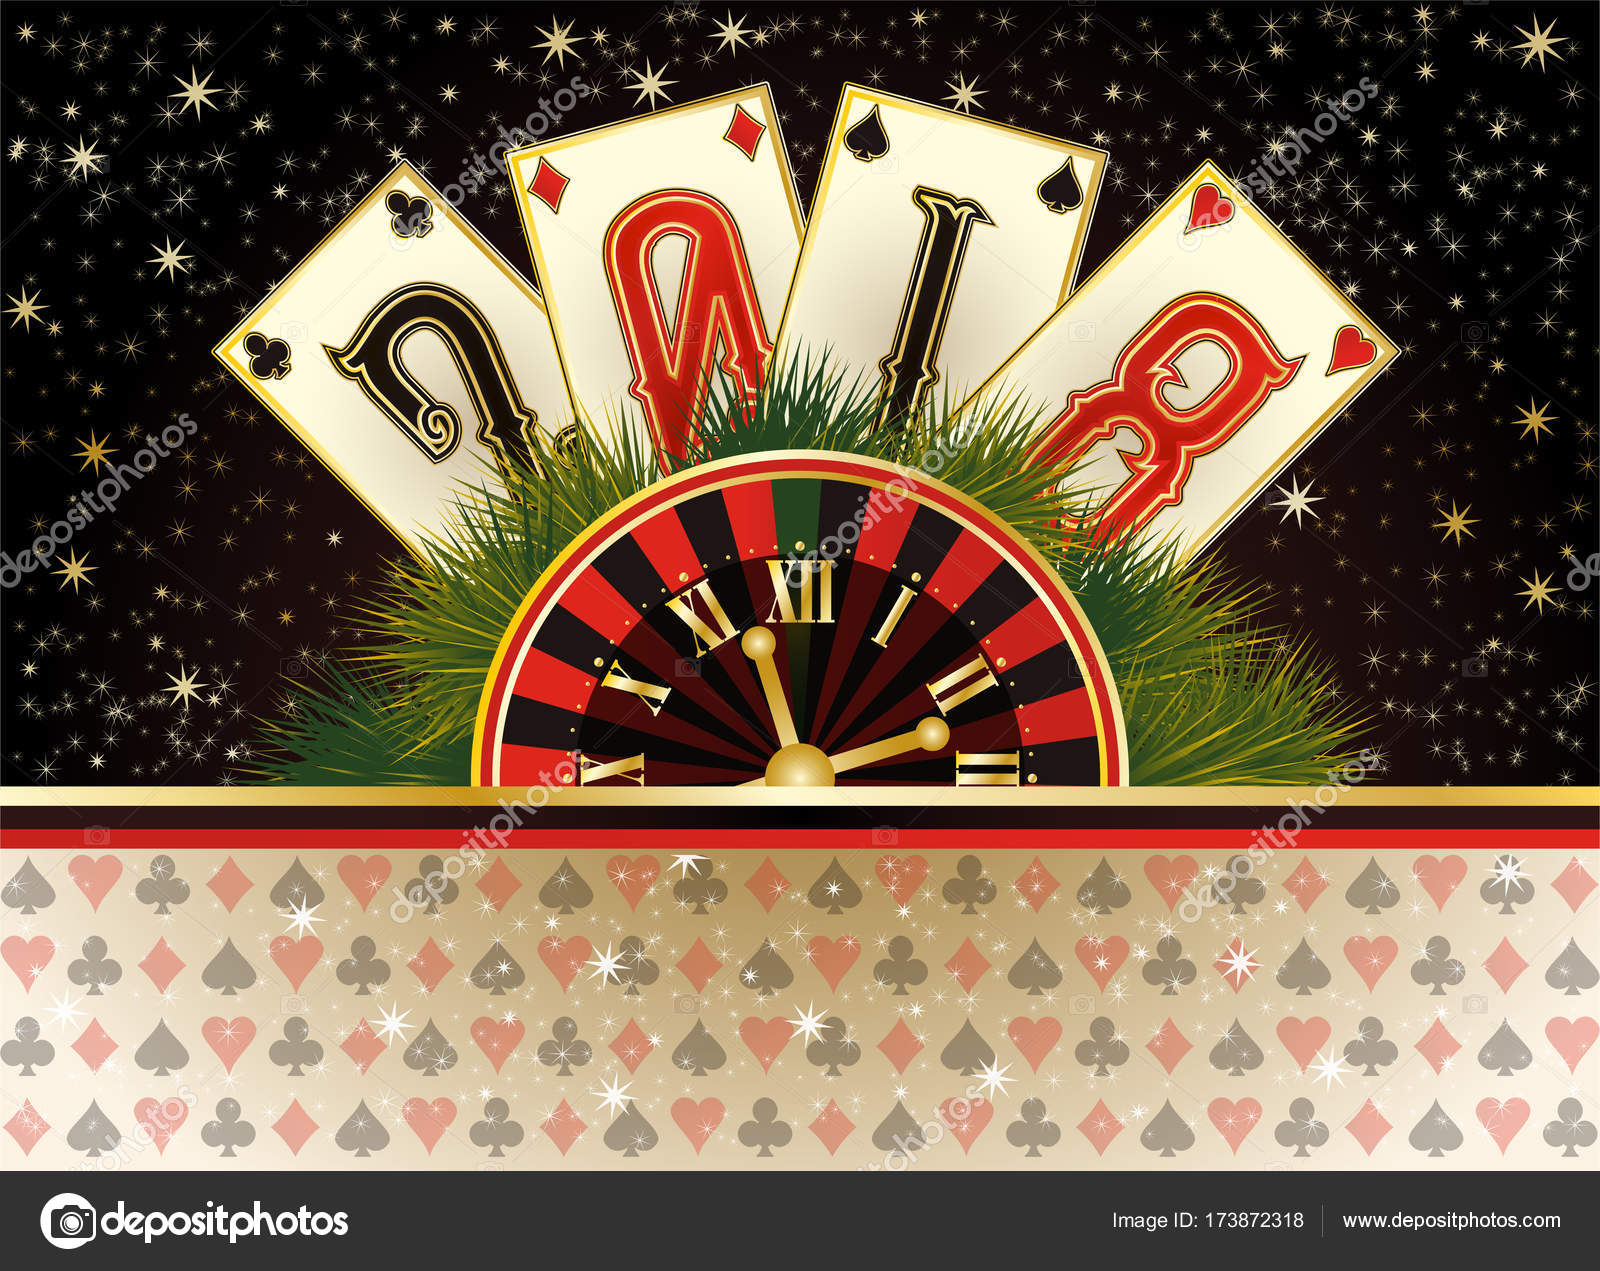 Super Useful Suggestions To Improve Online Casino